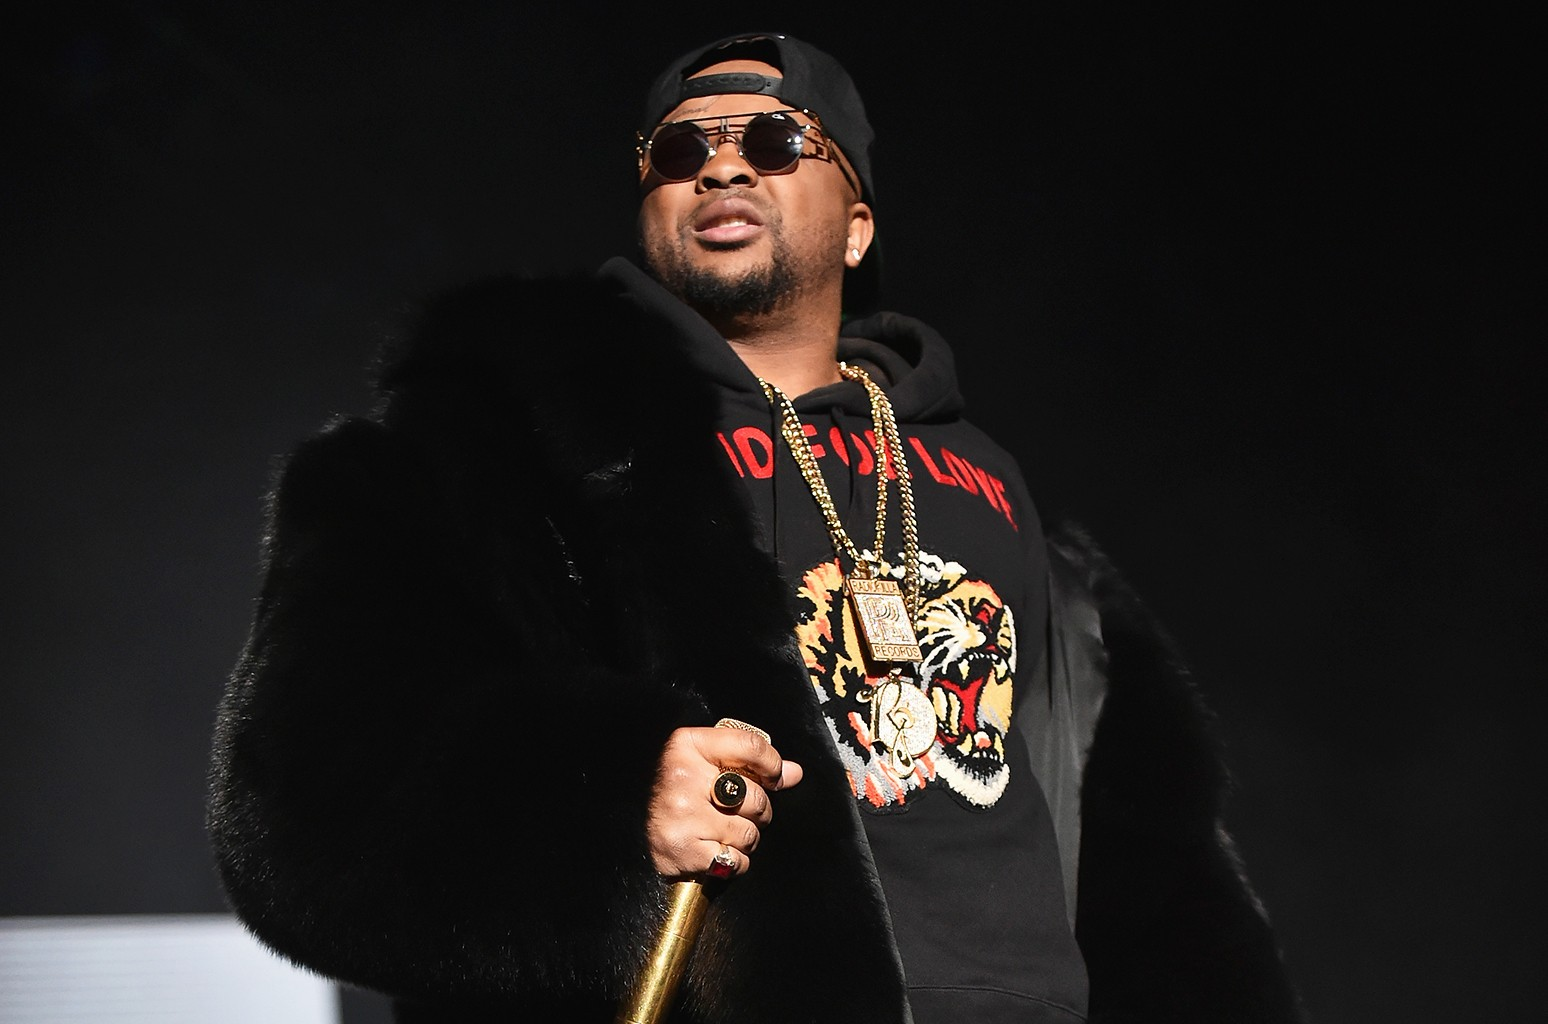 The Dream performs at Philips Arena on Dec. 10, 2016 in Atlanta.